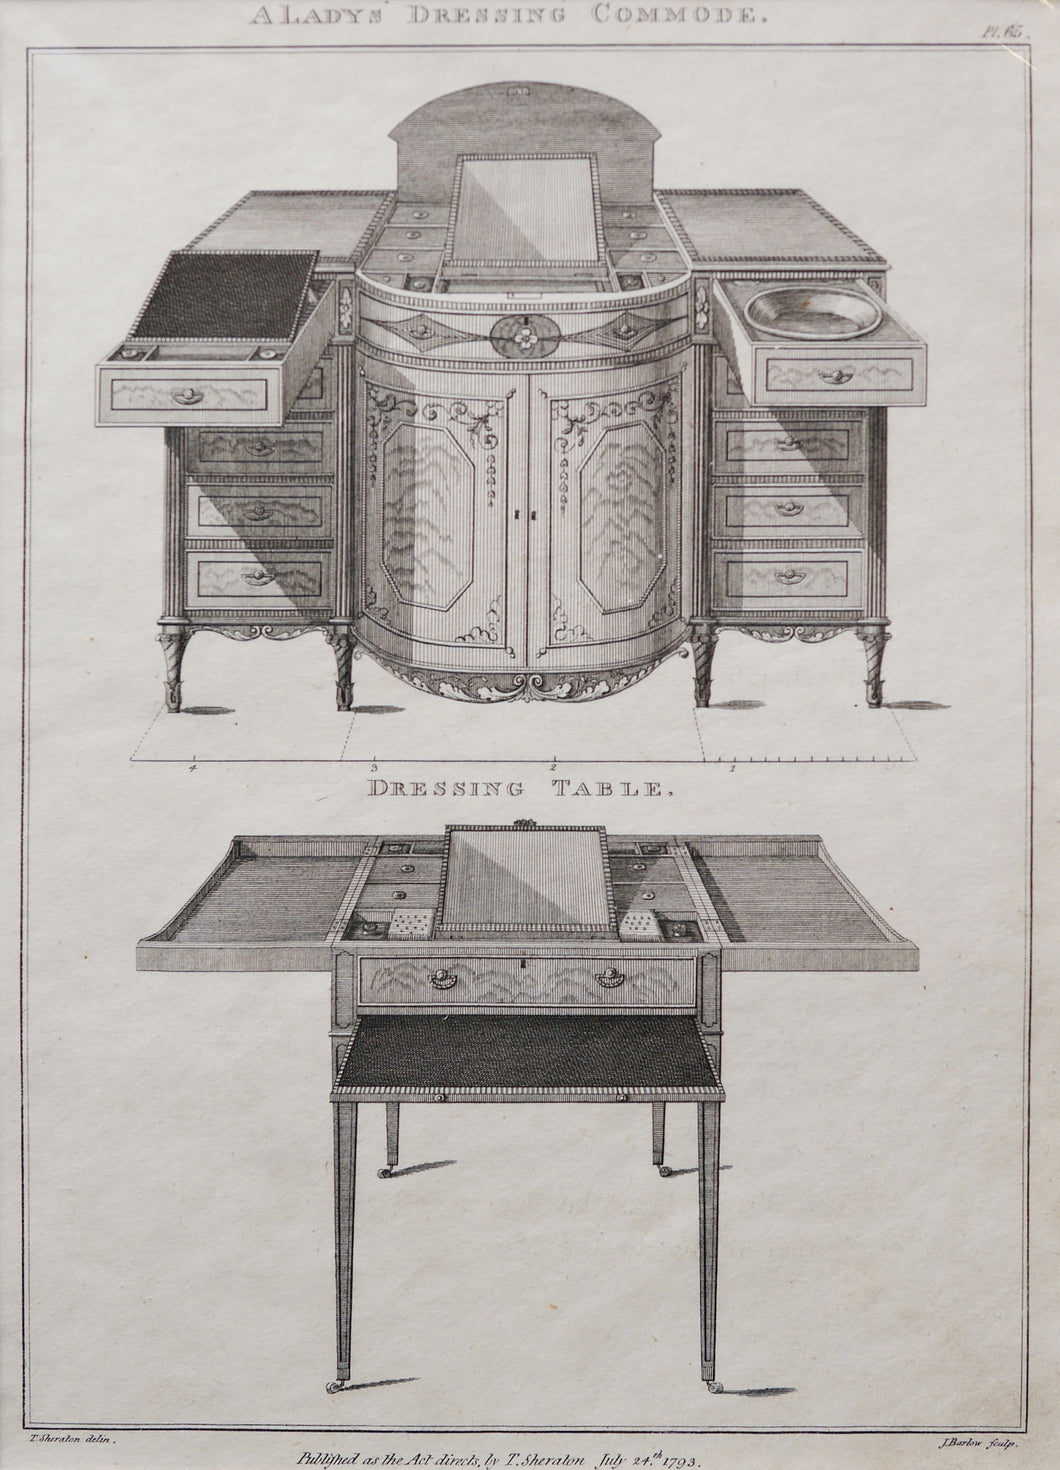 A Ladys Dressing Commode & Dressing Table by T Sheraton - Antique Copper Engraving 1793